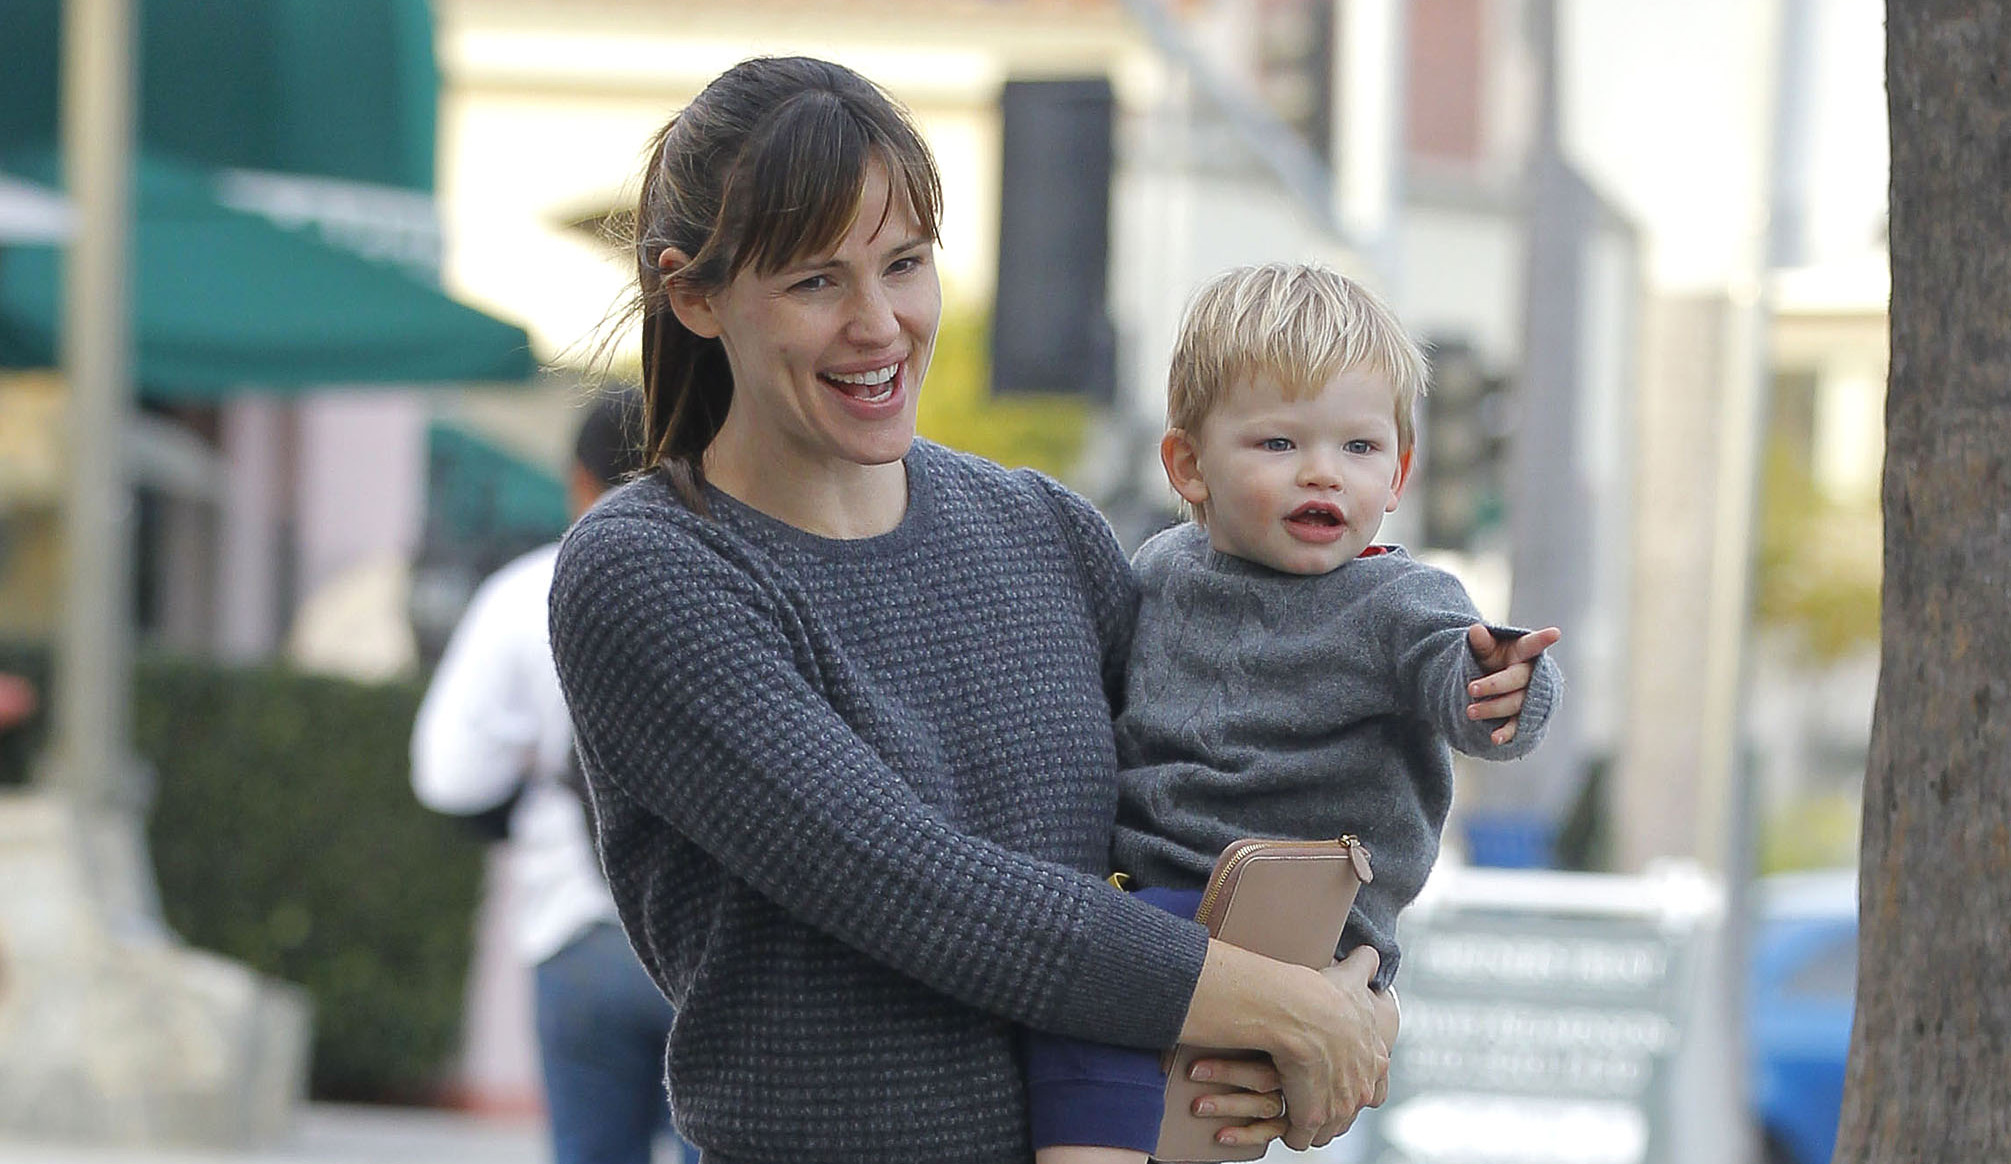 Jennifer Garner's Kids Prefer Her Without Makeup: 'They Just Want Me to Look Like Mom'